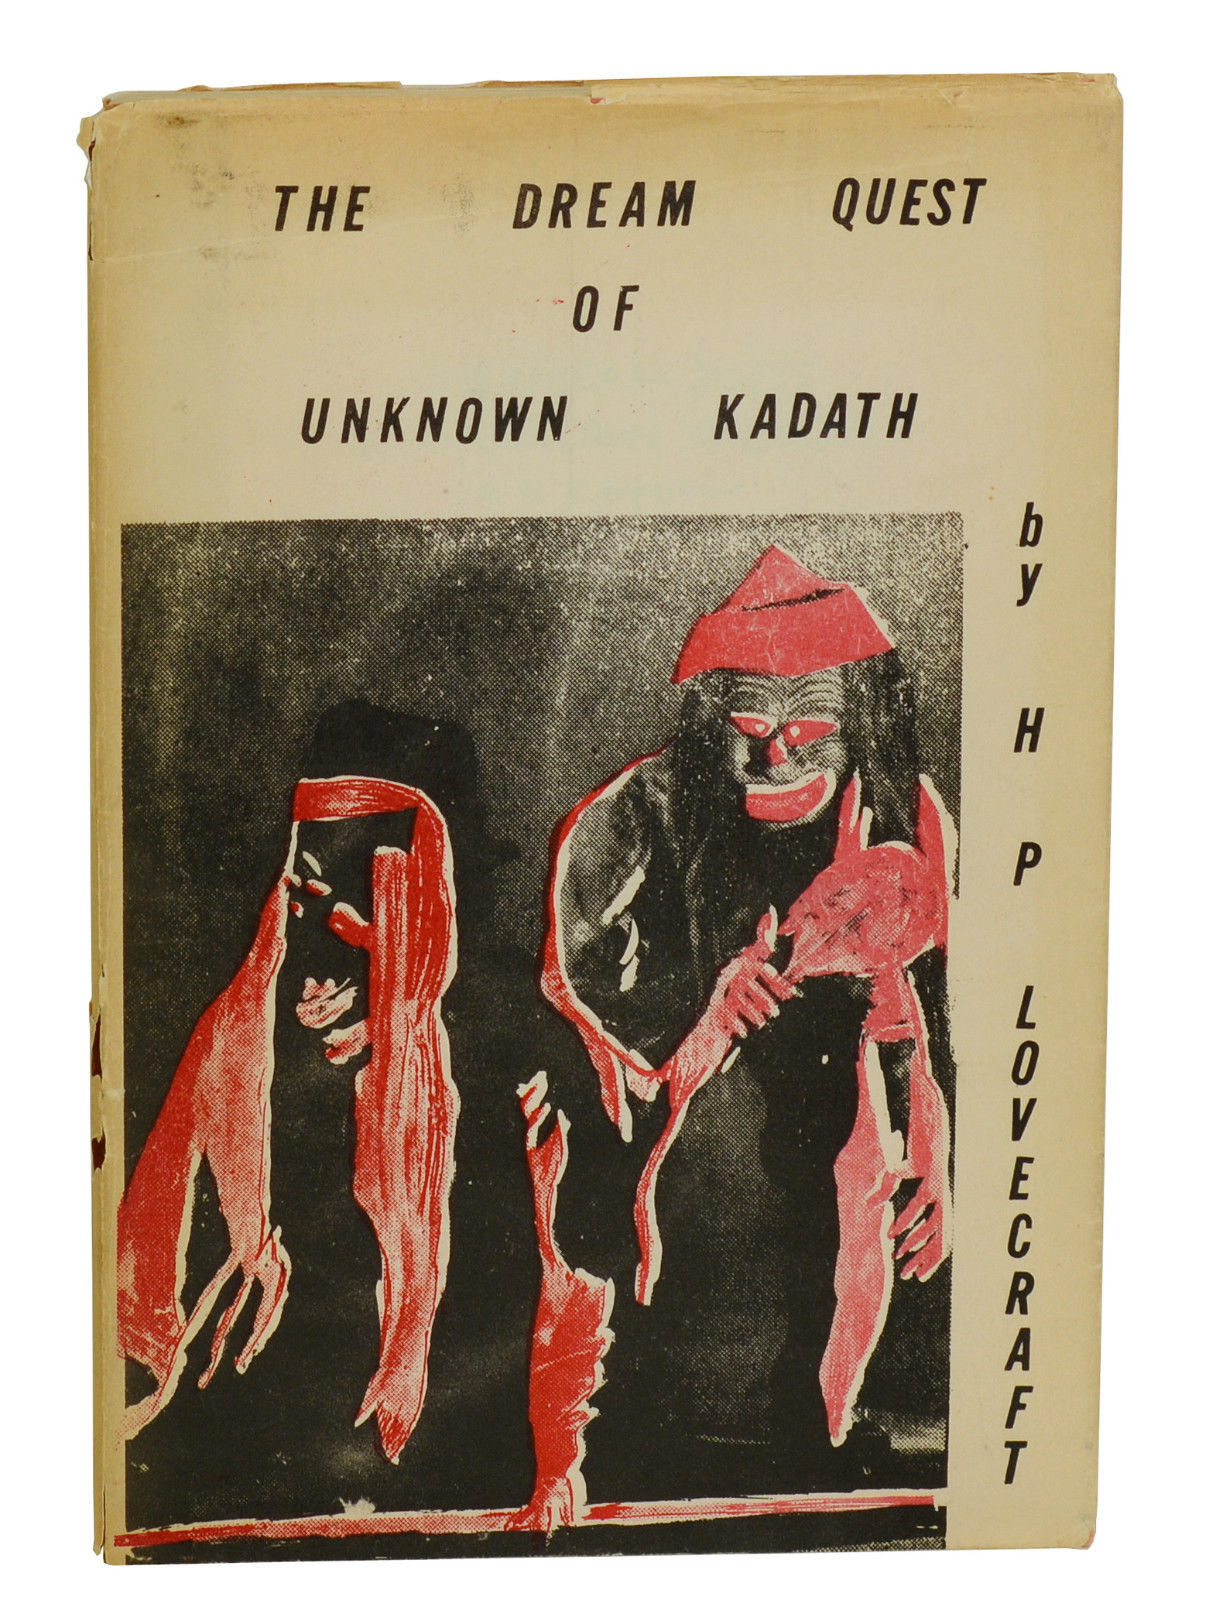 The dreamquest of unknown kadath